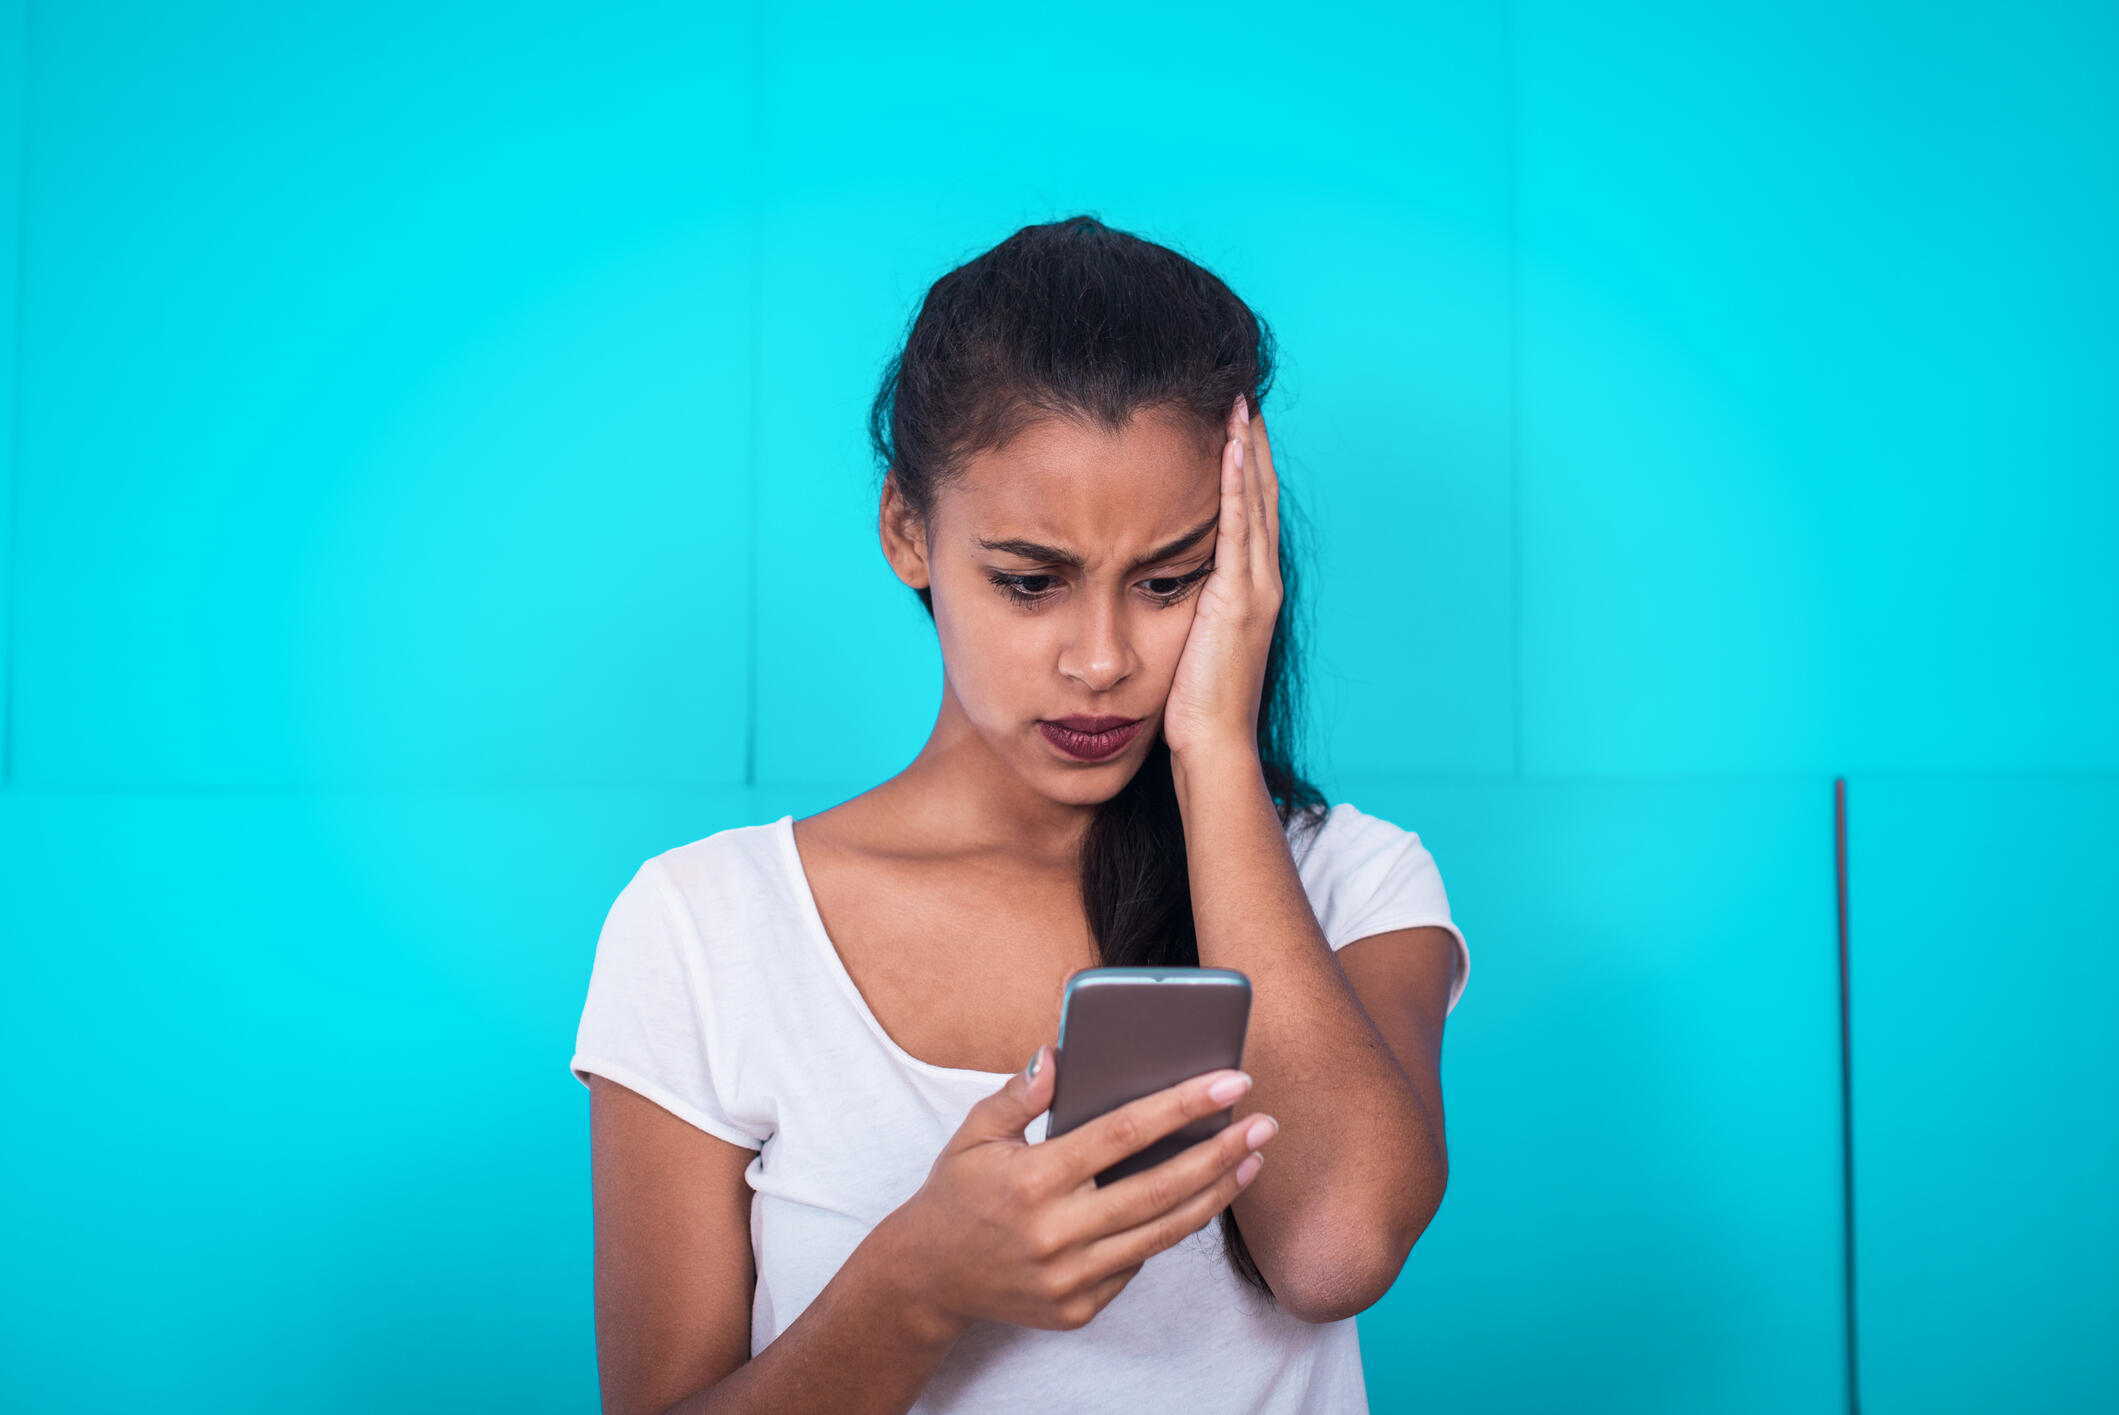 Young woman receive bad text message. Bad news